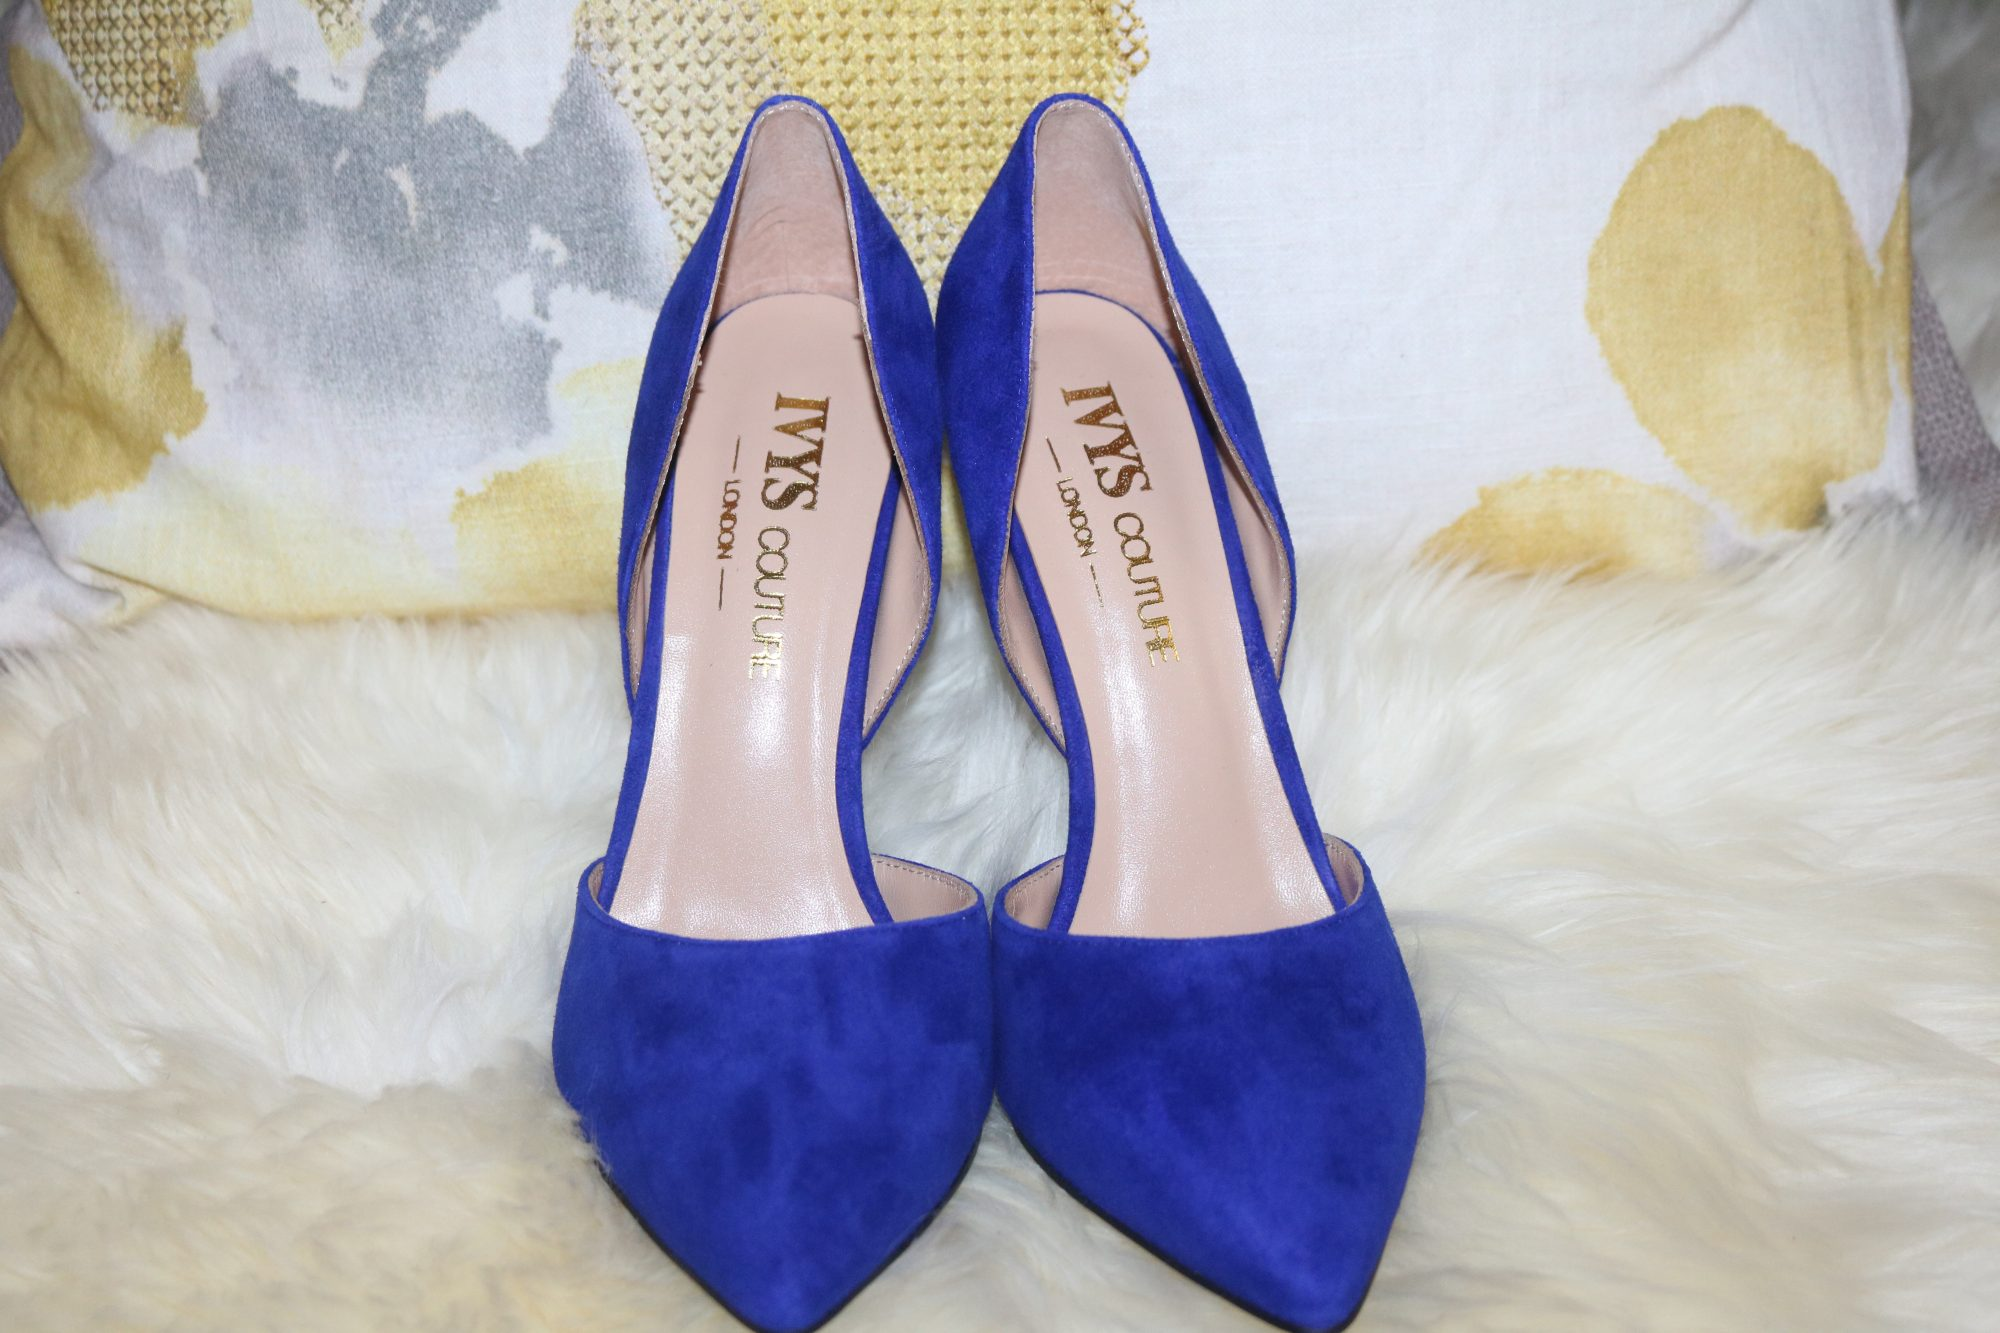 ROYAL BLUE PUMPS BY IVYSCOUTRE LONDON